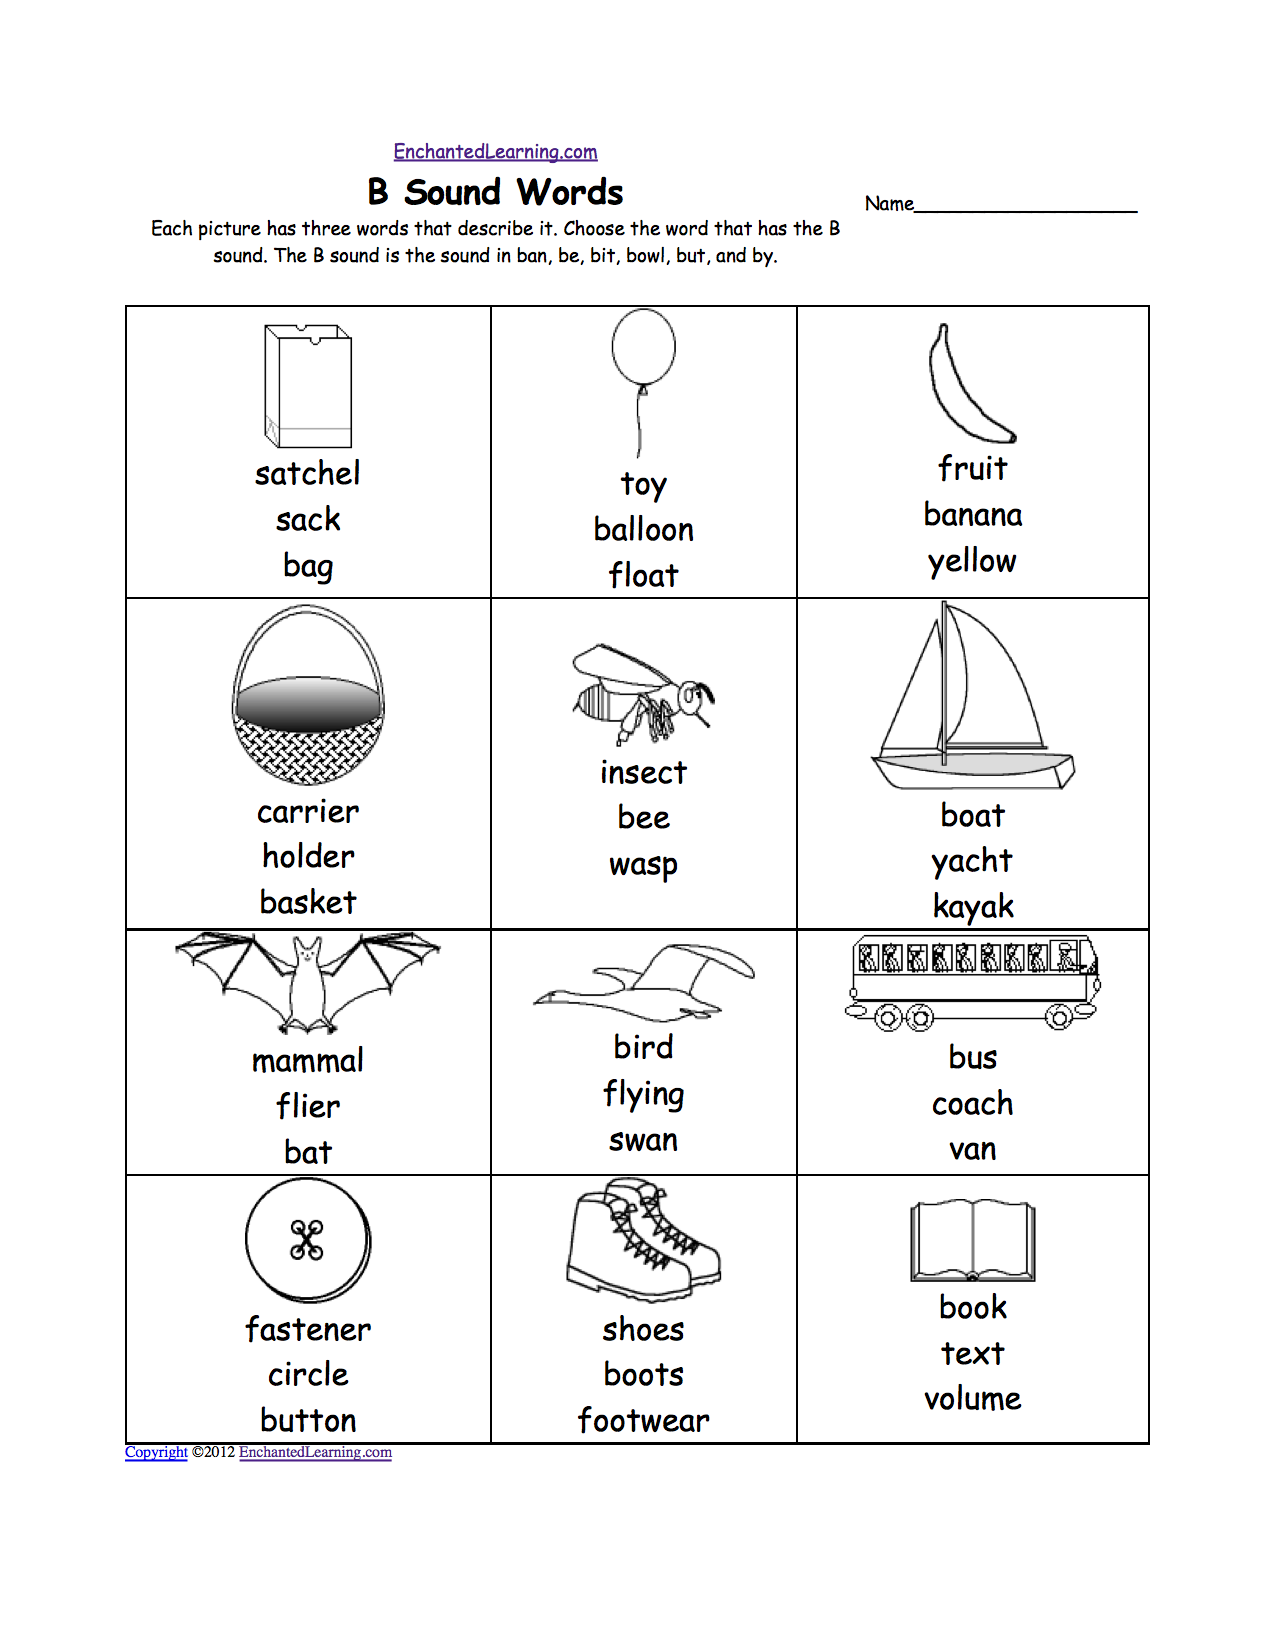 Weirdmailus  Unusual Phonics Worksheets Multiple Choice Worksheets To Print  With Goodlooking Quotbquot Sound Phonics Worksheet Multiple Choice Each Picture Has Three Words That Describe It Choose The Word That Has A Quotbquot Sound The Quotbquot Sound Is The Sound  With Delectable Little Women Worksheets Also Pre School Math Worksheets In Addition Time Worksheet Ks And Super Teachers Worksheets English As Well As Mathematics Printable Worksheets Additionally Math Printable Worksheets Th Grade From Enchantedlearningcom With Weirdmailus  Goodlooking Phonics Worksheets Multiple Choice Worksheets To Print  With Delectable Quotbquot Sound Phonics Worksheet Multiple Choice Each Picture Has Three Words That Describe It Choose The Word That Has A Quotbquot Sound The Quotbquot Sound Is The Sound  And Unusual Little Women Worksheets Also Pre School Math Worksheets In Addition Time Worksheet Ks From Enchantedlearningcom